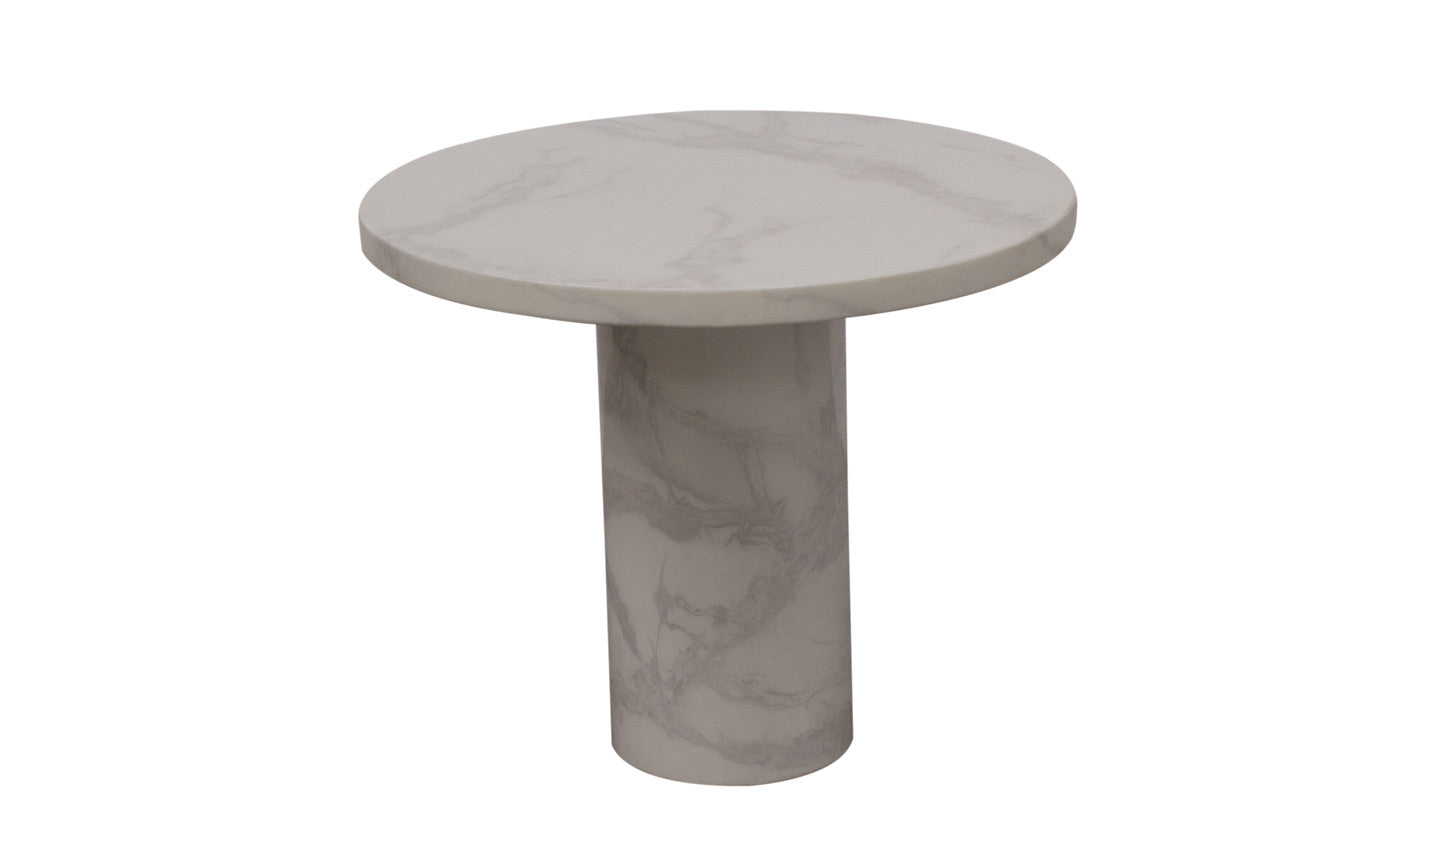 Carra Lamp Table Round - Bone White 650